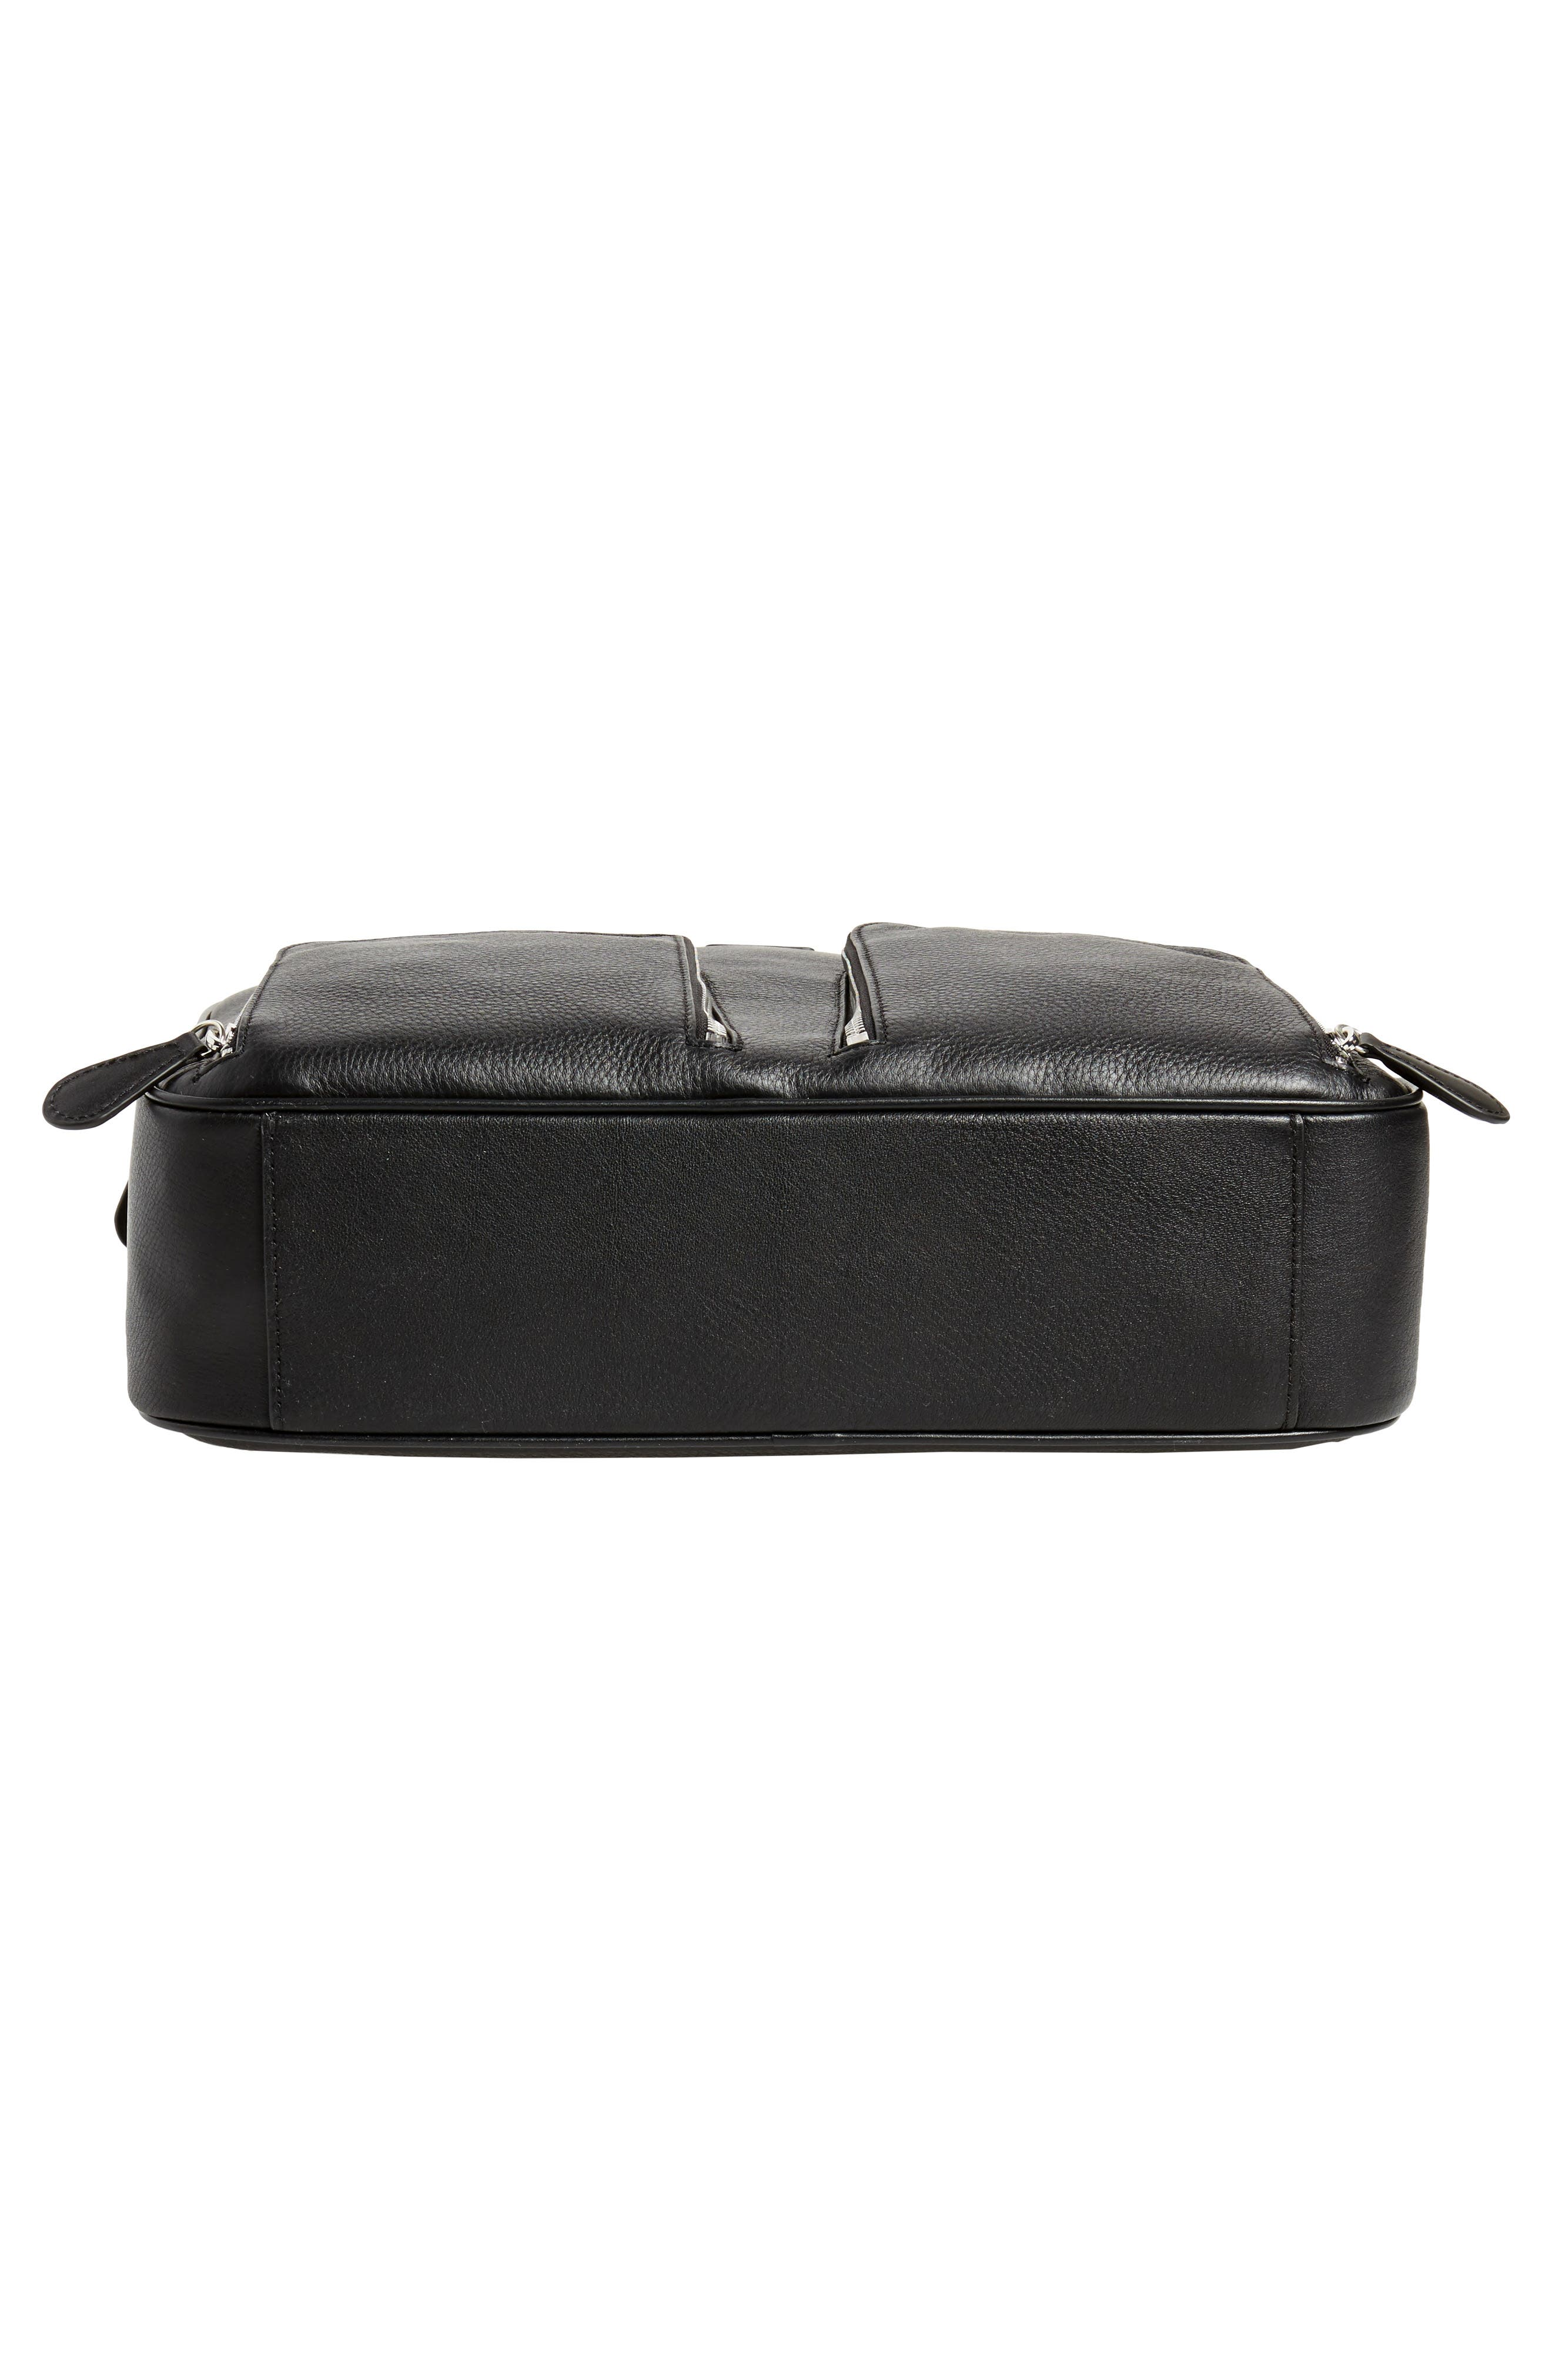 Toother Leather Briefcase,                             Alternate thumbnail 6, color,                             Black